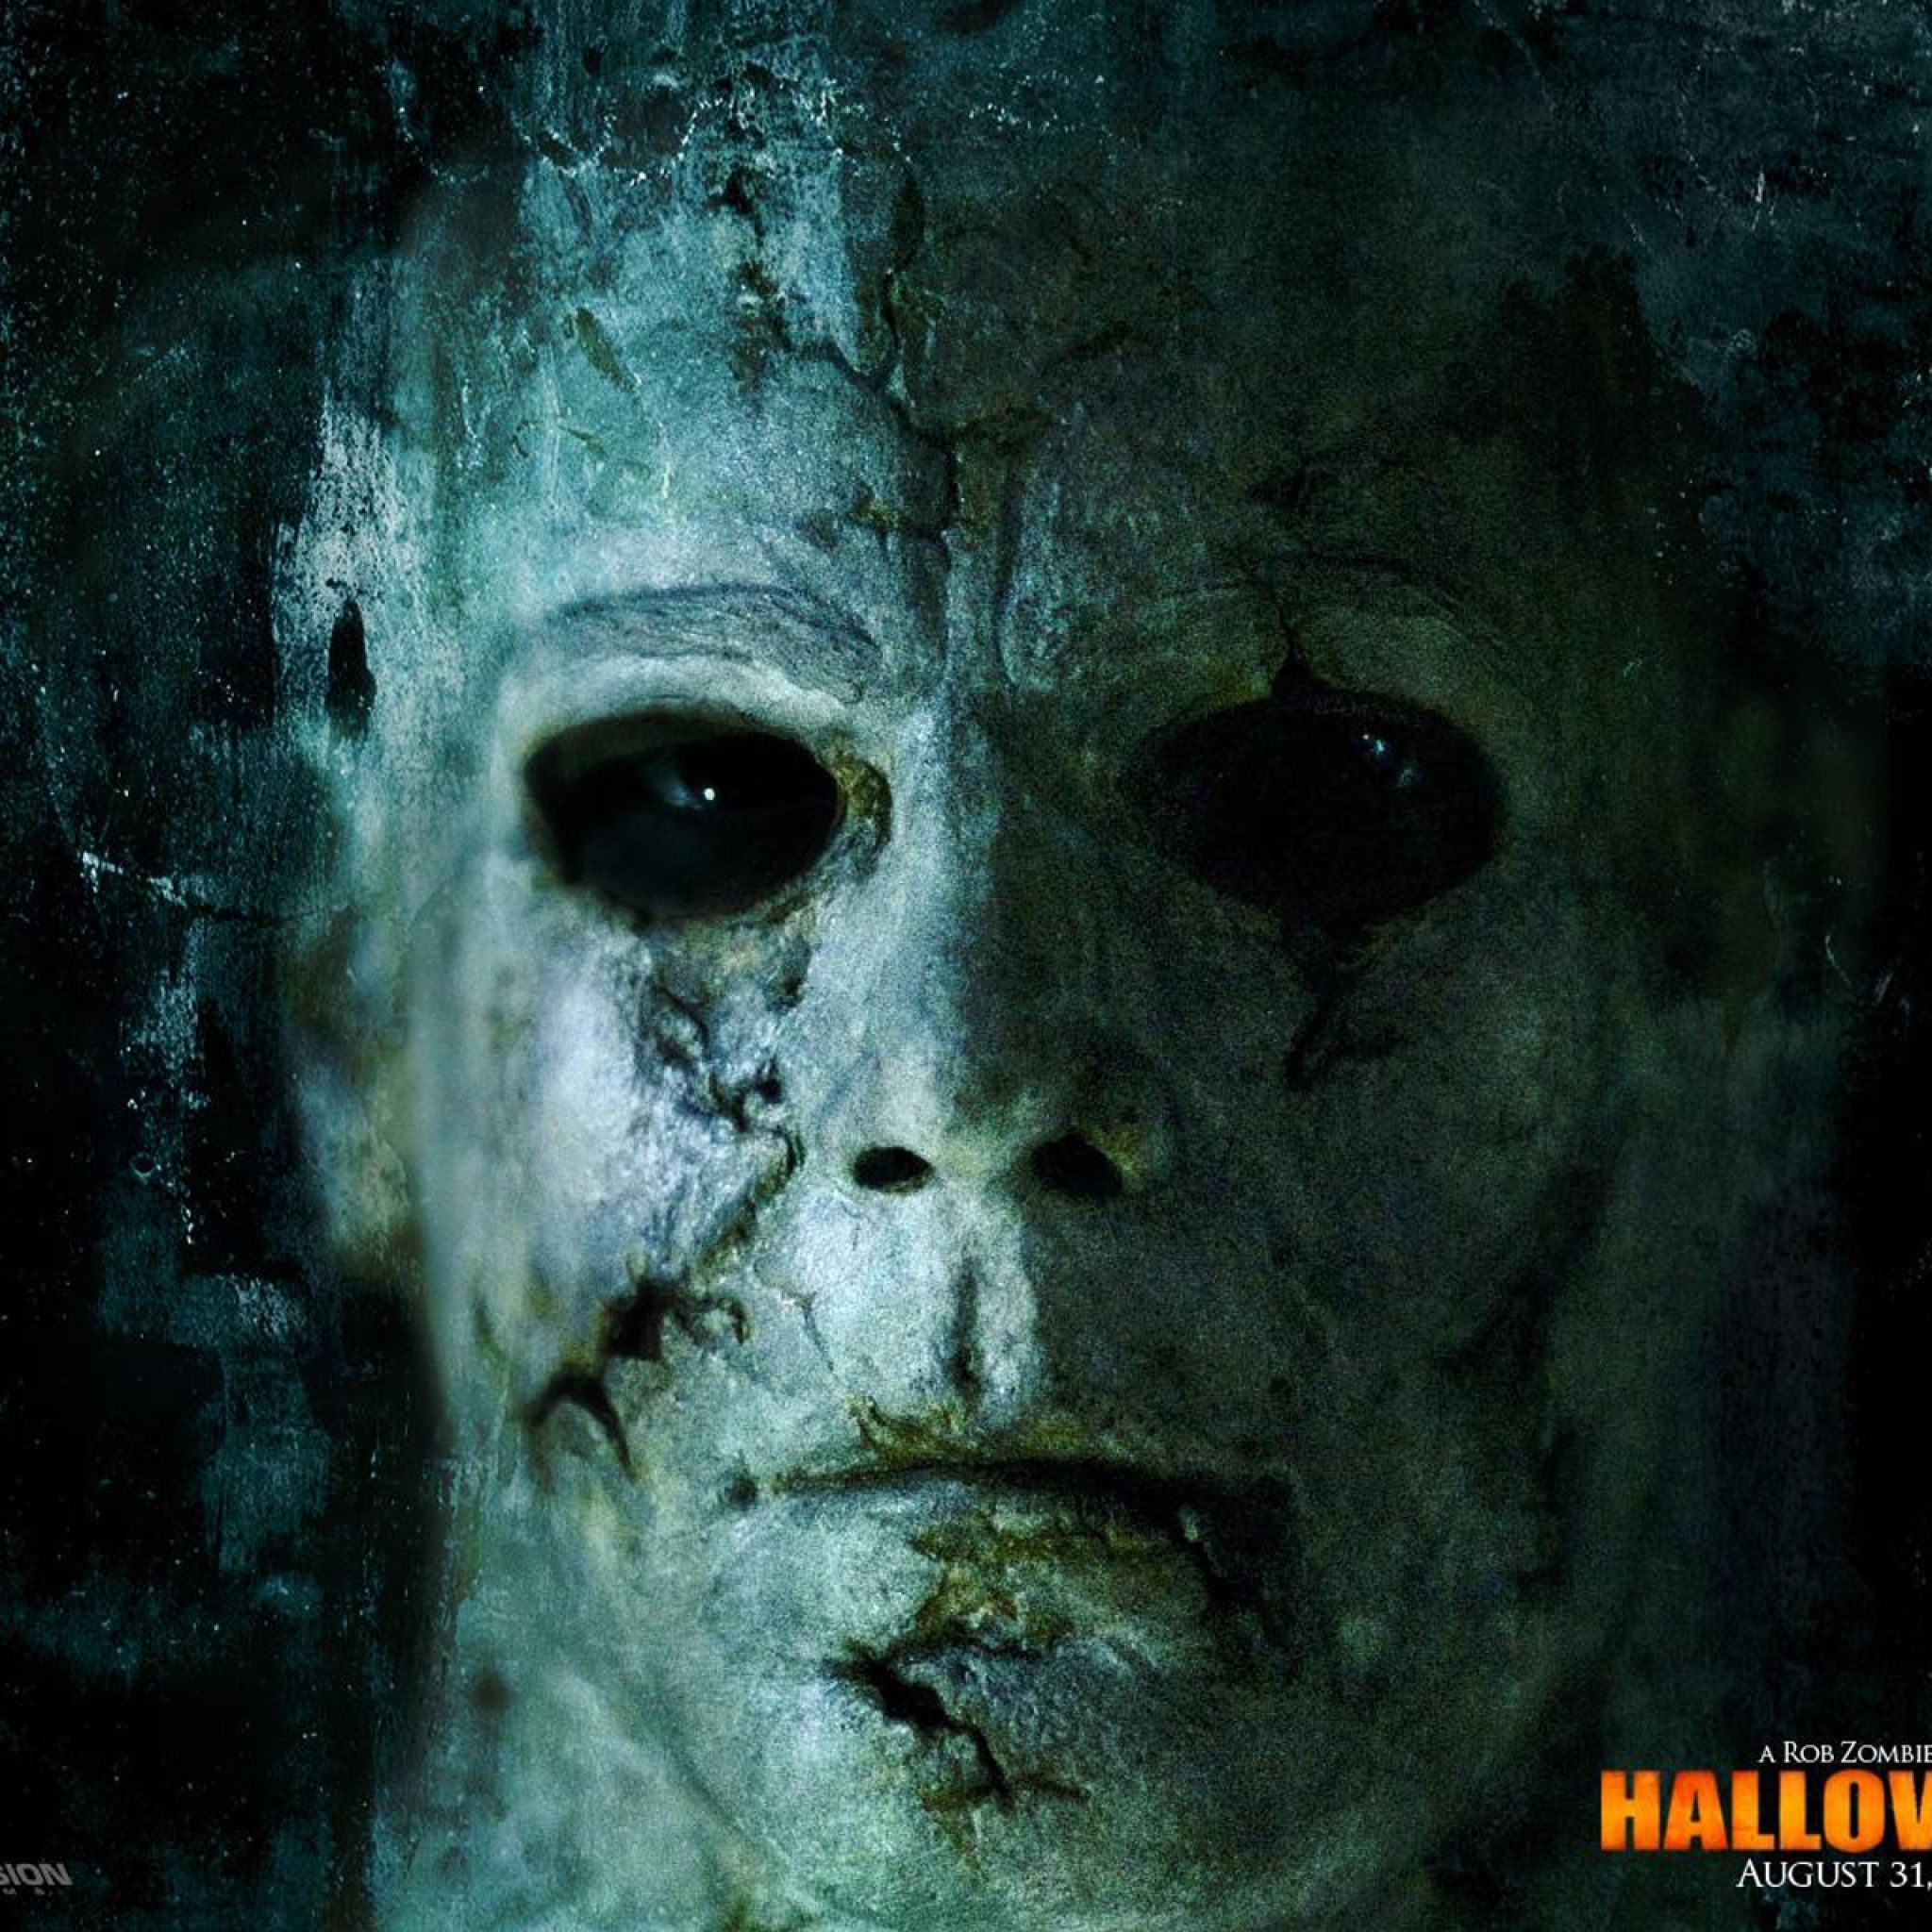 download wallpaper 2048x2048 halloween 2 michael myers face